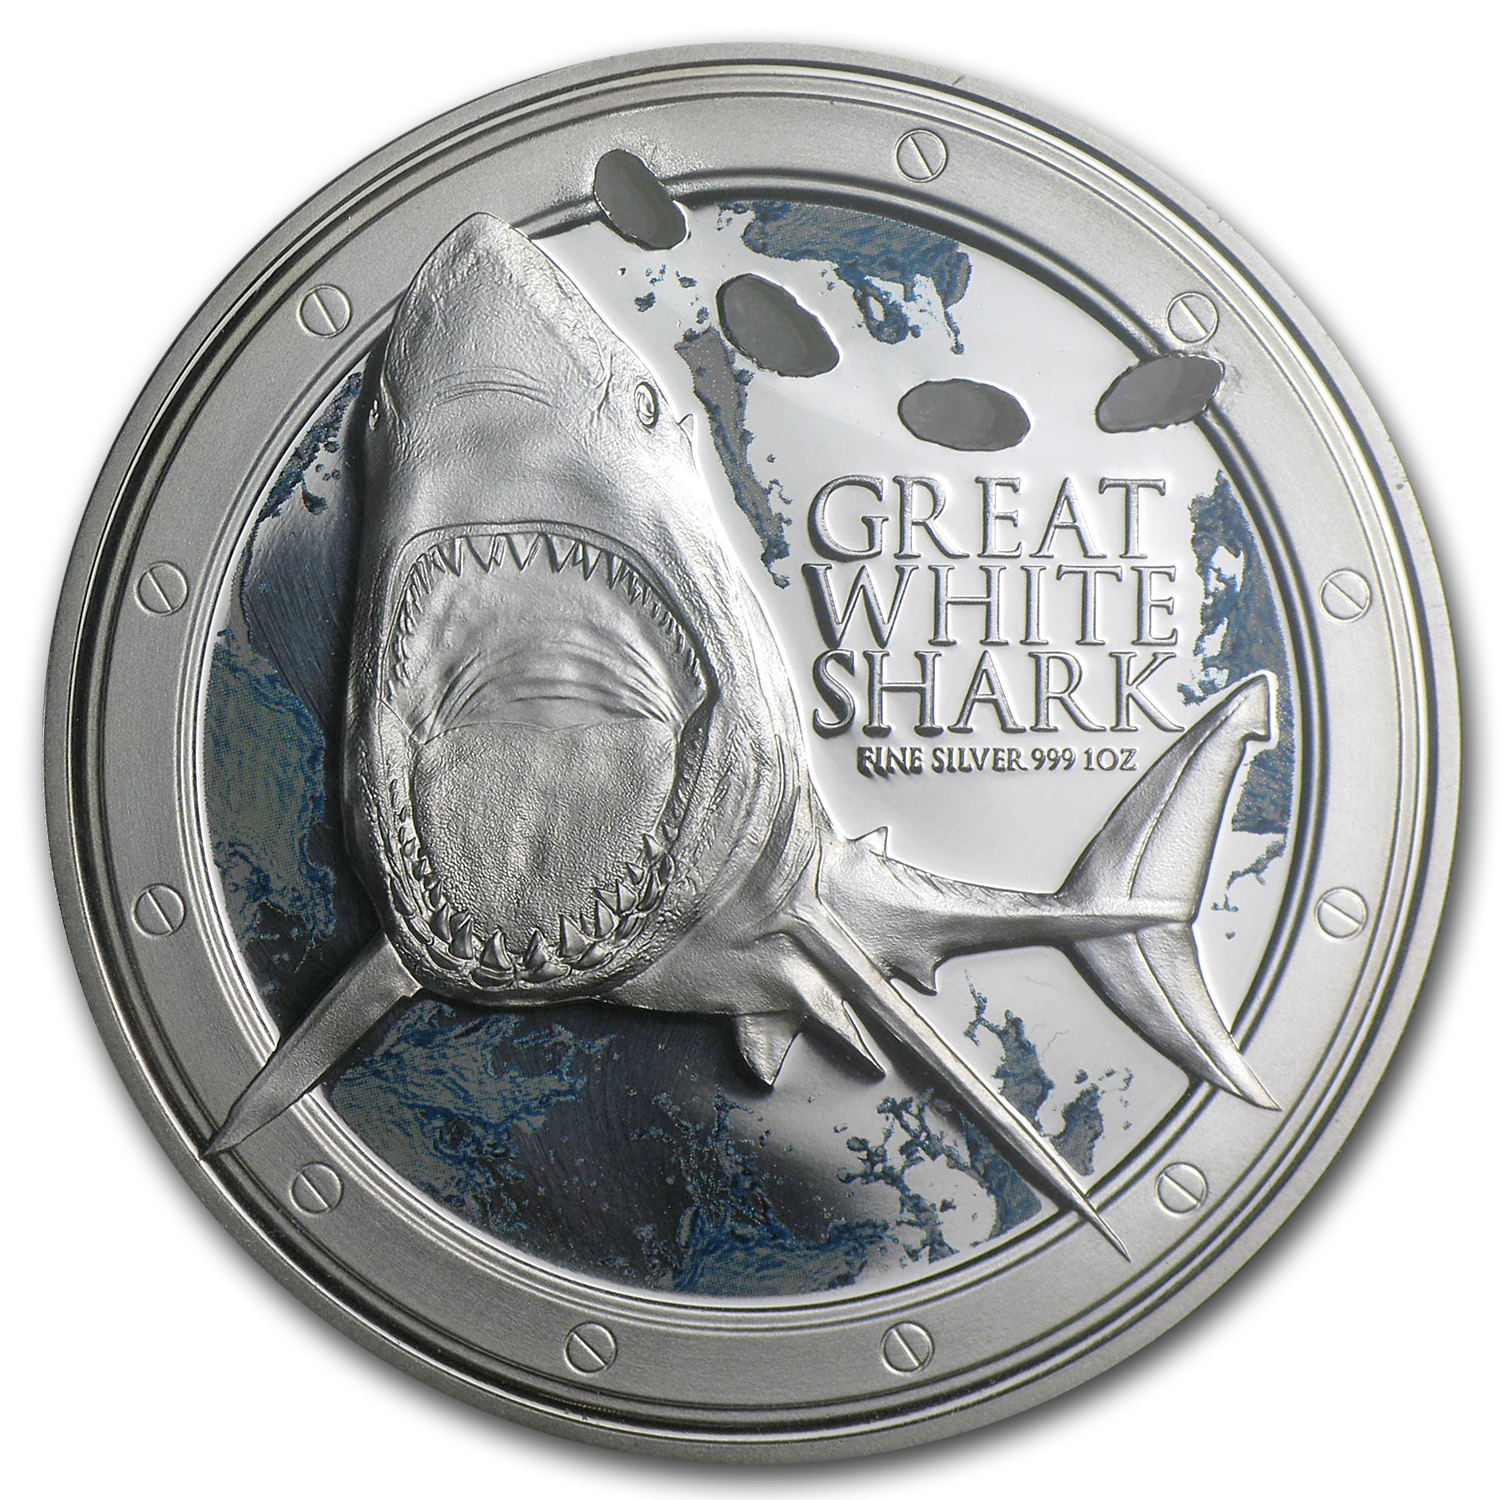 2012 1 oz Silver Niue $2 Great White Shark (W/Box & COA)